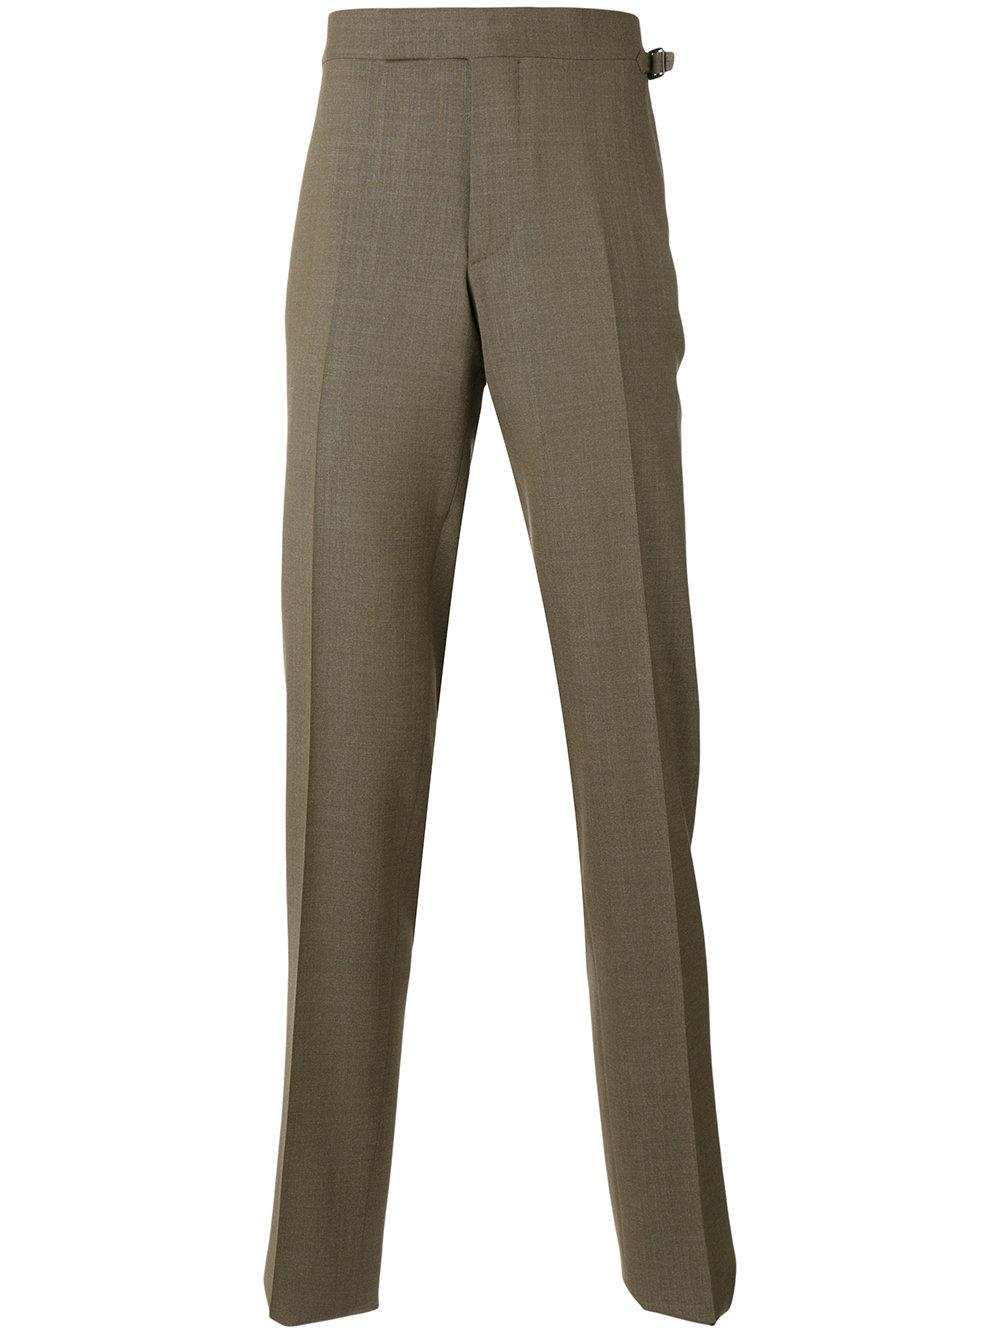 Beige, brown and orange wool blend plaid slim tailored trousers from Pt01 featuring a mid rise, a waistband with belt loops, a concealed front fastening, side pockets, rear welt pockets, a slim fit, a regular length and a plaid 10mins.ml: $